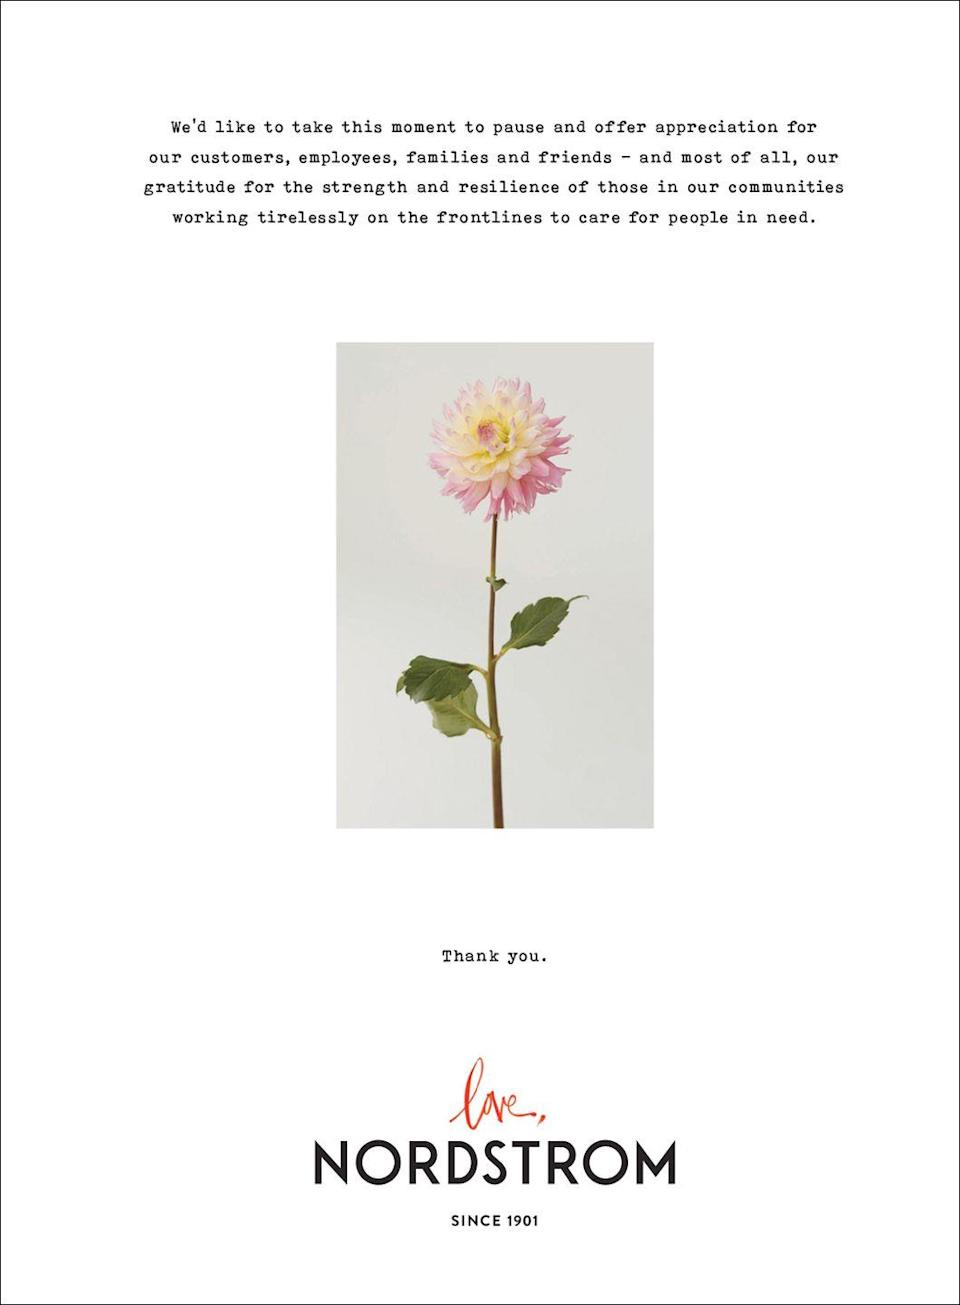 <p>We'd like to take this moment to pause and offer appreciation for our customers, employees, families and friends – and most of all, our gratitude for the strength and resilience of those in our communities working tirelessly on the frontlines to care for people in need. </p><p>Thank you. </p><p><em>Love, Nordstrom</em></p>